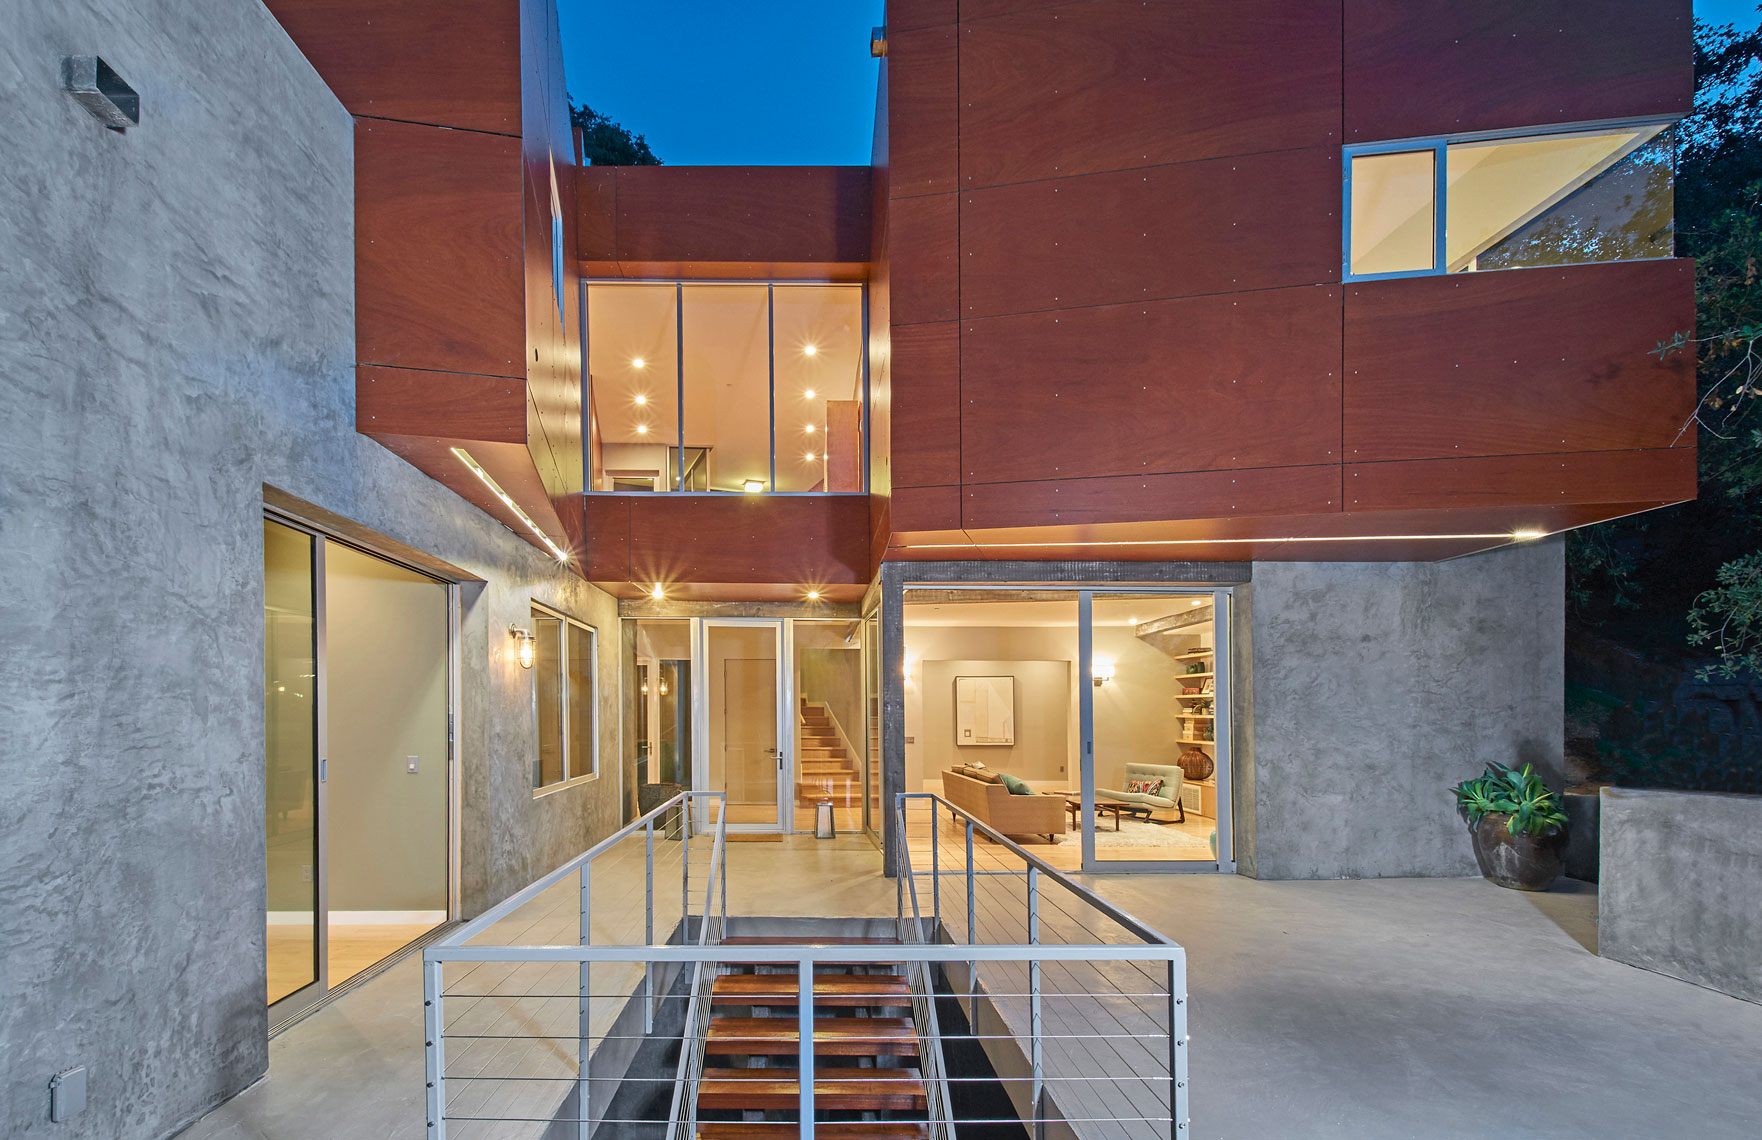 Architectural-photography-of-exterior-twilight-front-view-of-contemporary-home-Joe-Atlas-architectural-photographer-Los-Angeles.